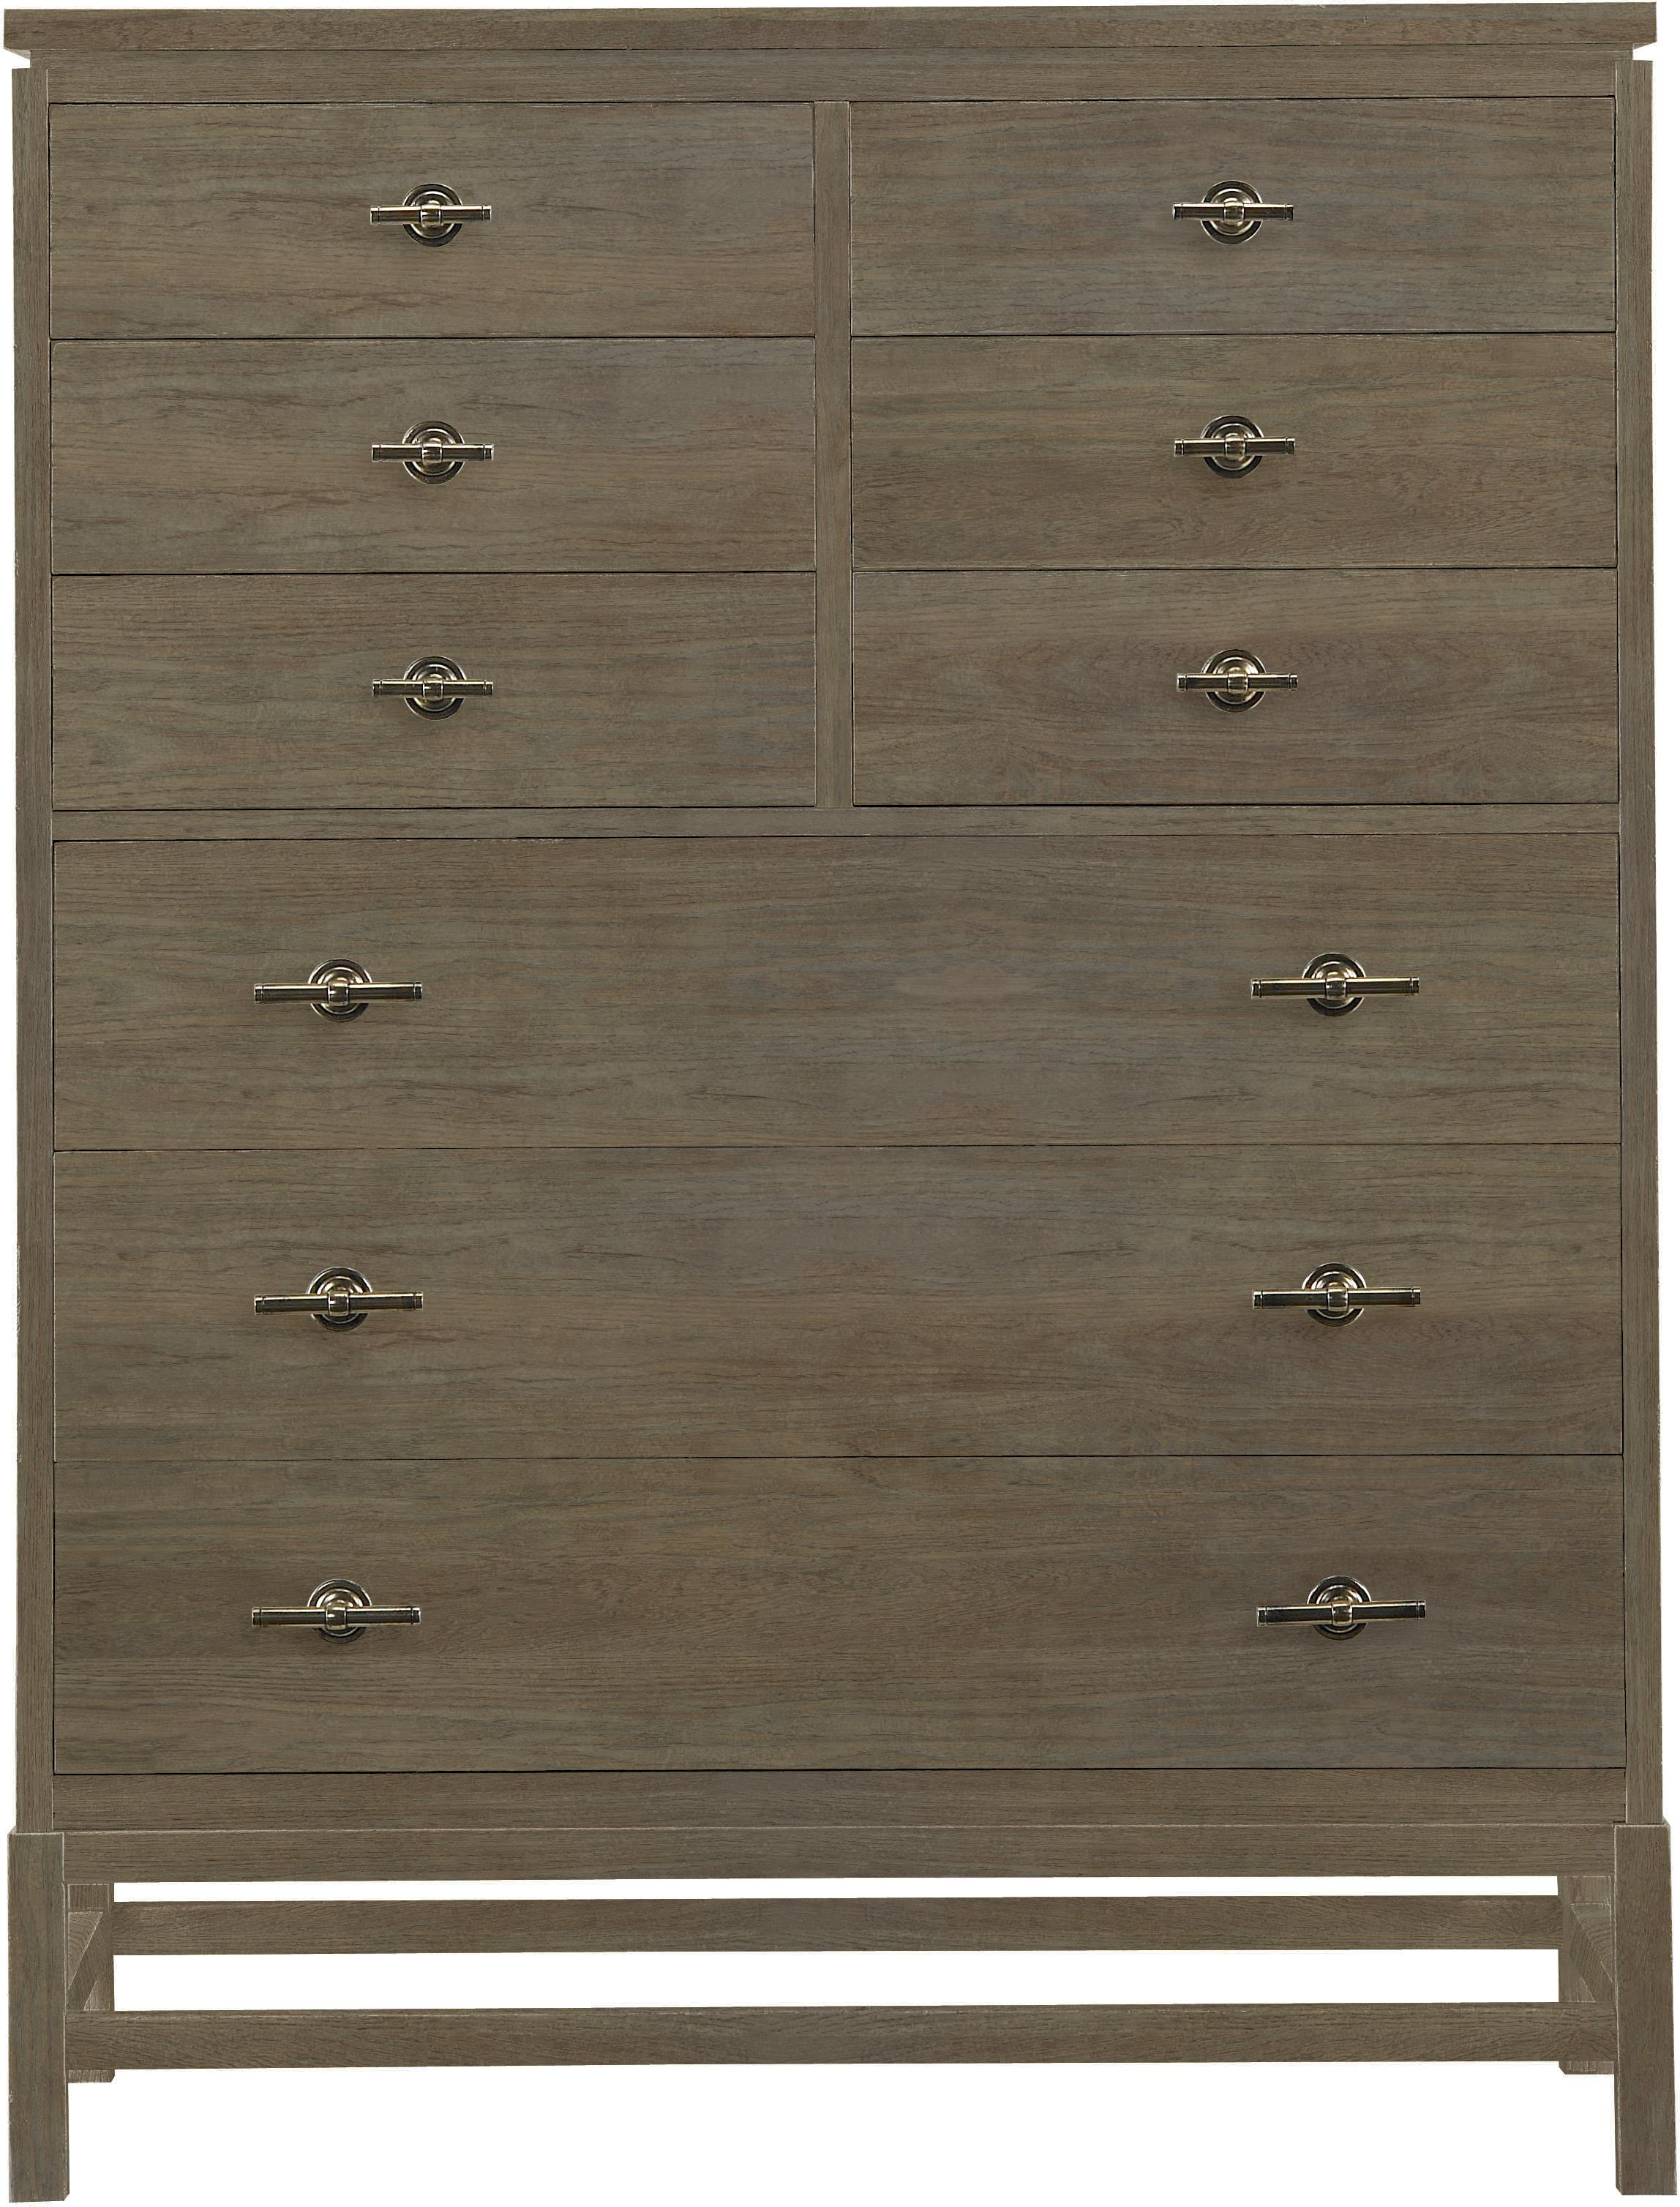 Stanley Furniture Coastal Living Resort Tranquility Isle Drawer Chest - Item Number: 062-33-13